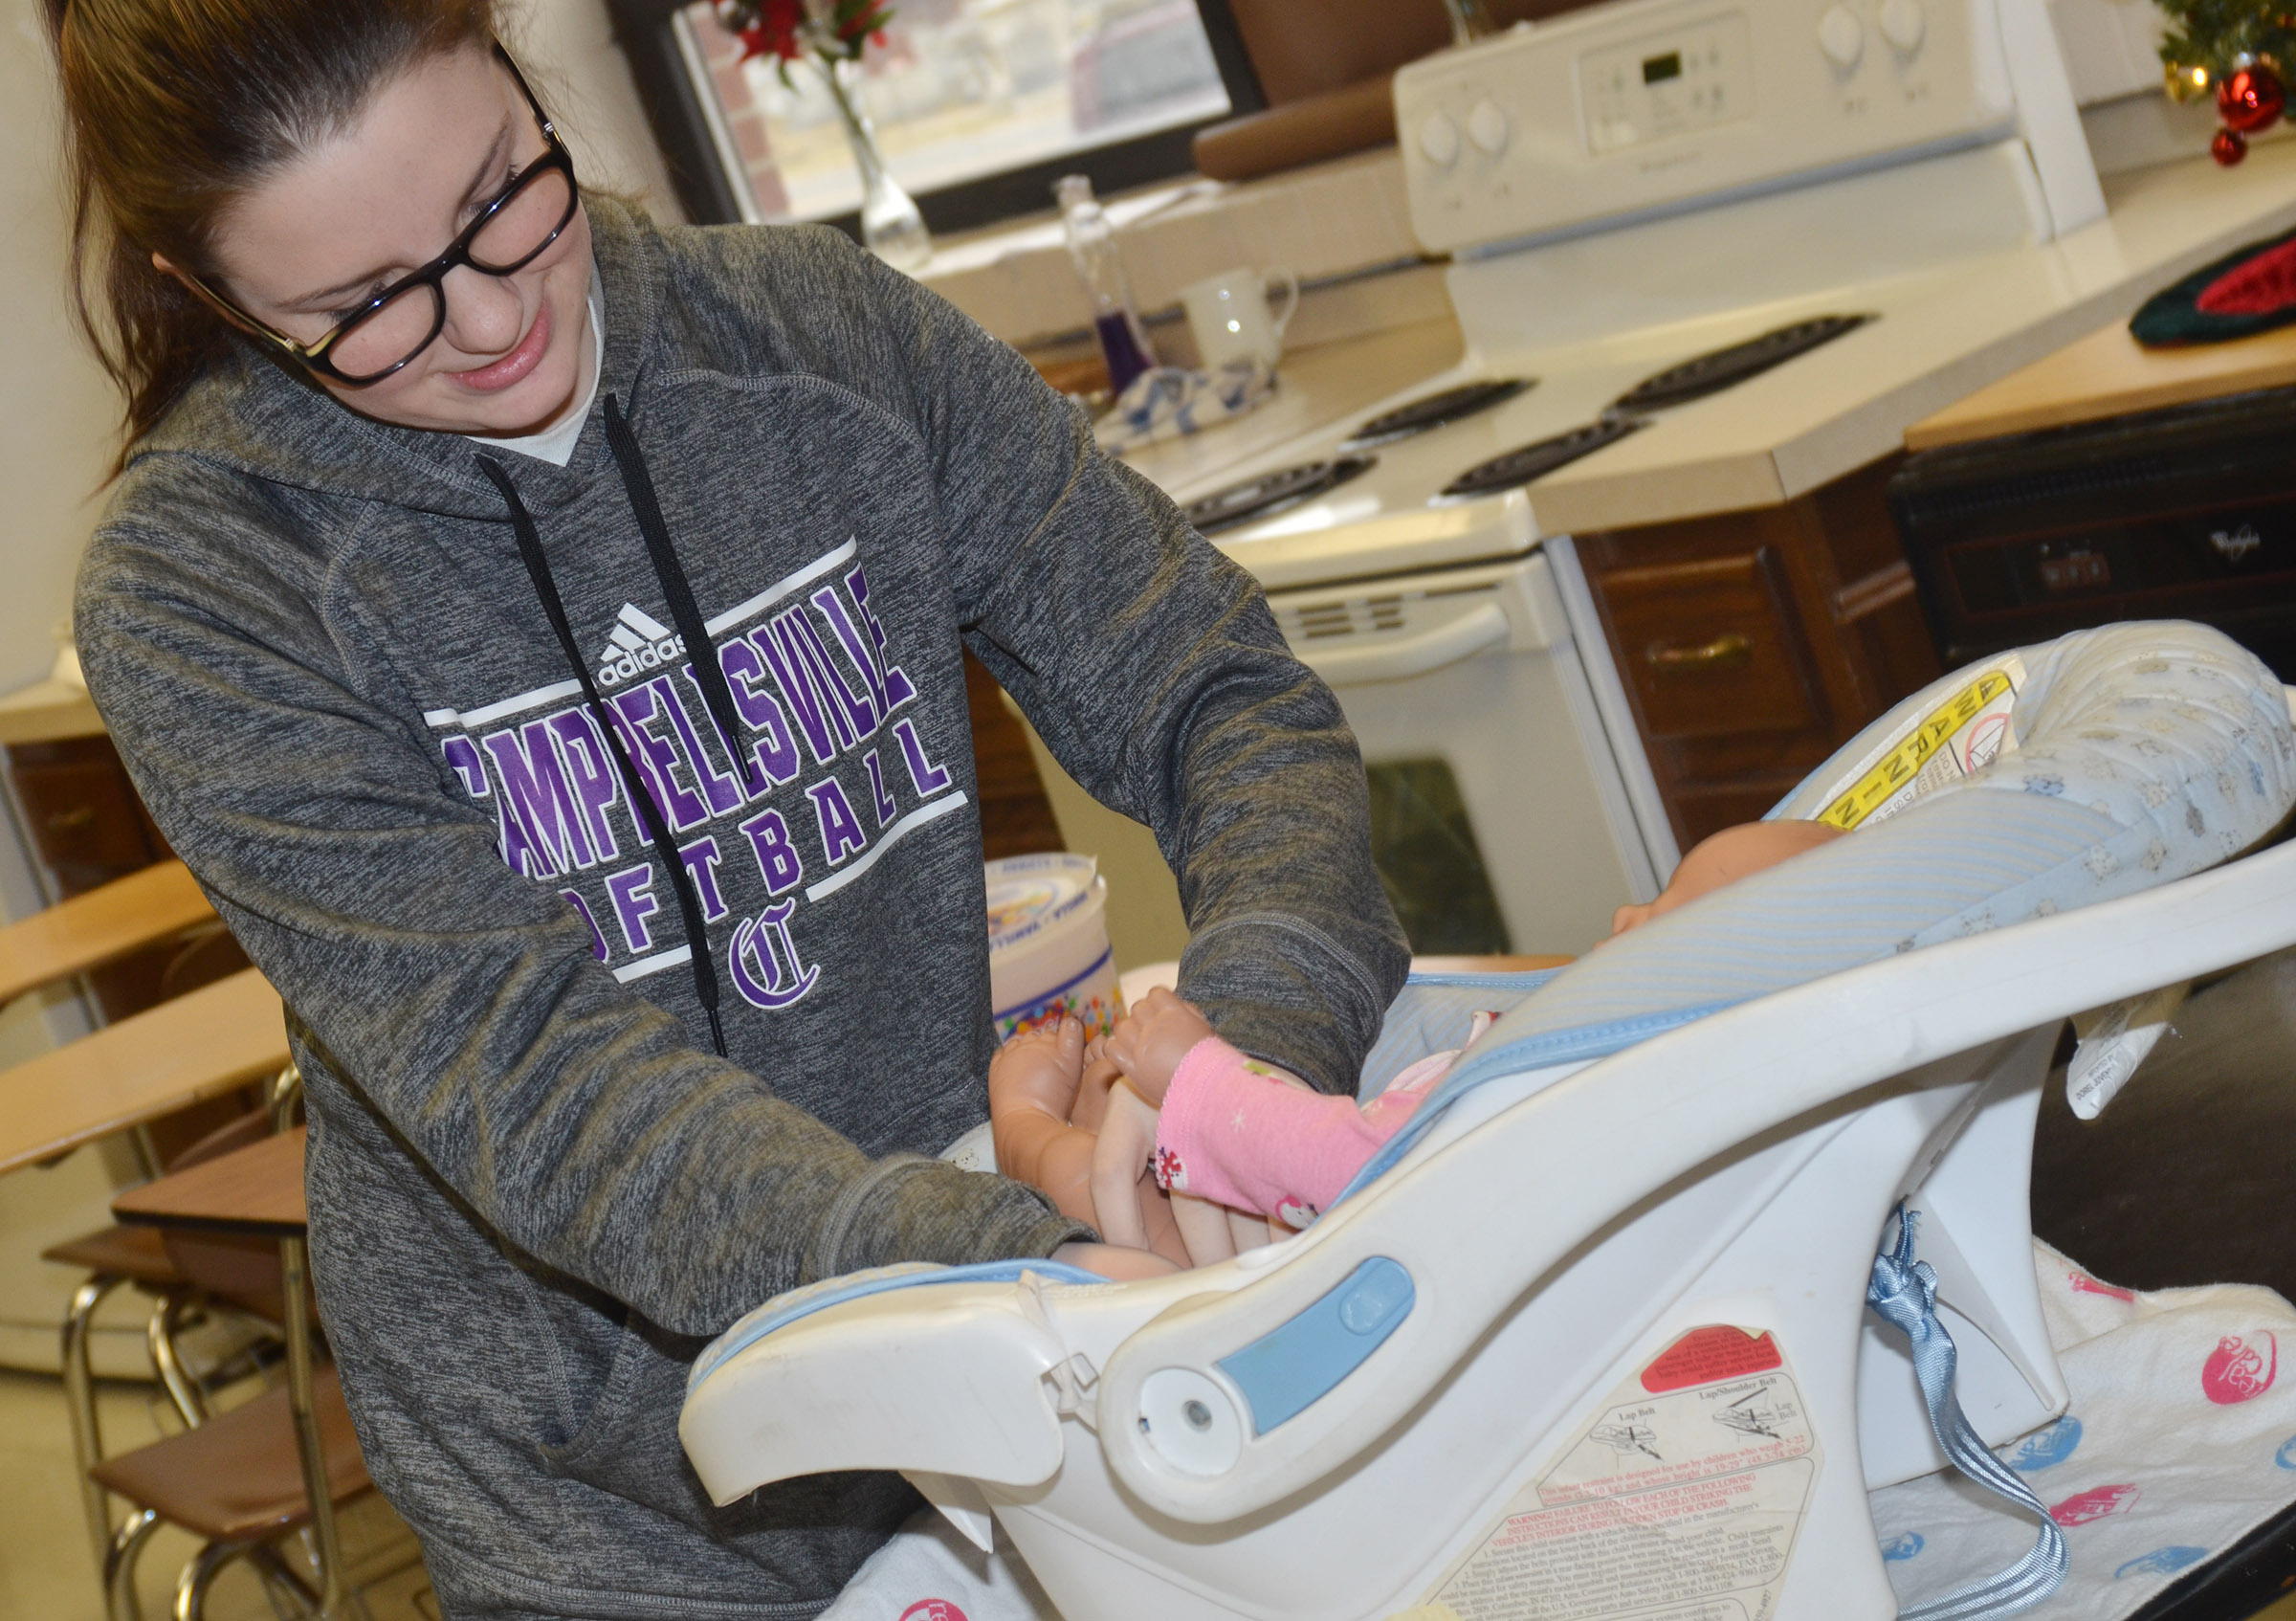 CHS freshman Sydney Wilson places her baby in a child seat.